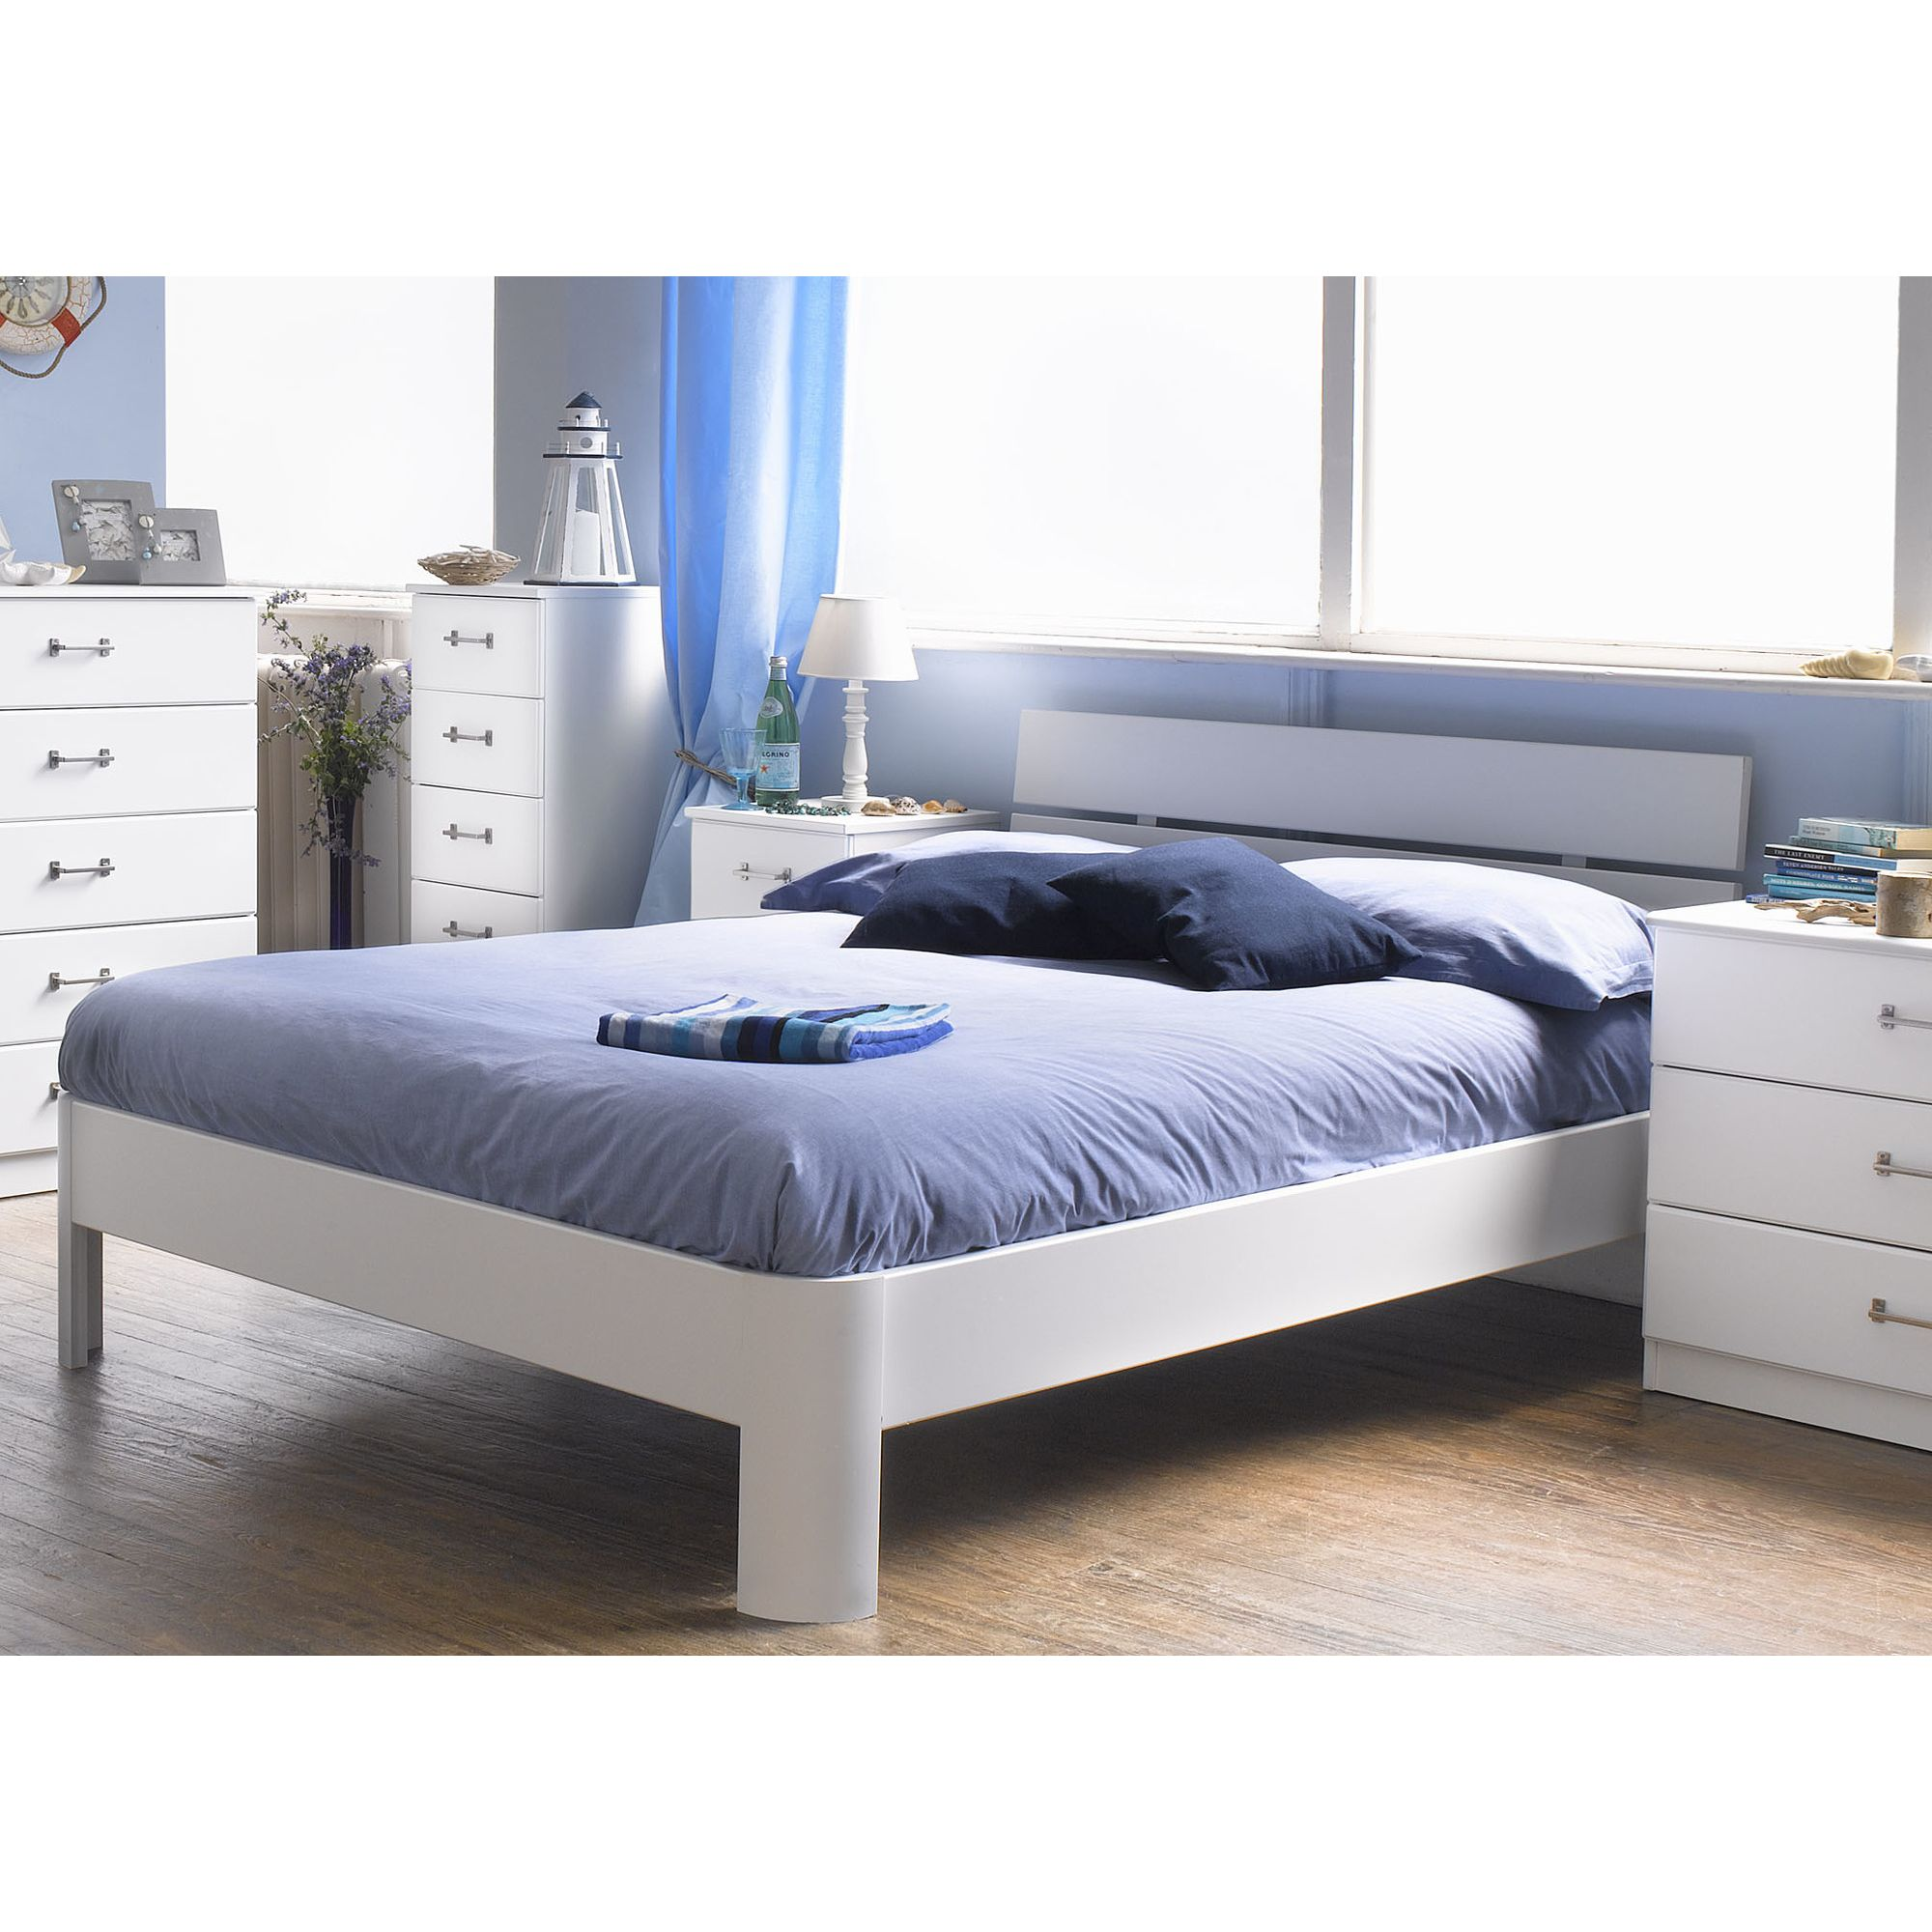 Alto Furniture Visualise Century Bed Frame - Double at Tesco Direct